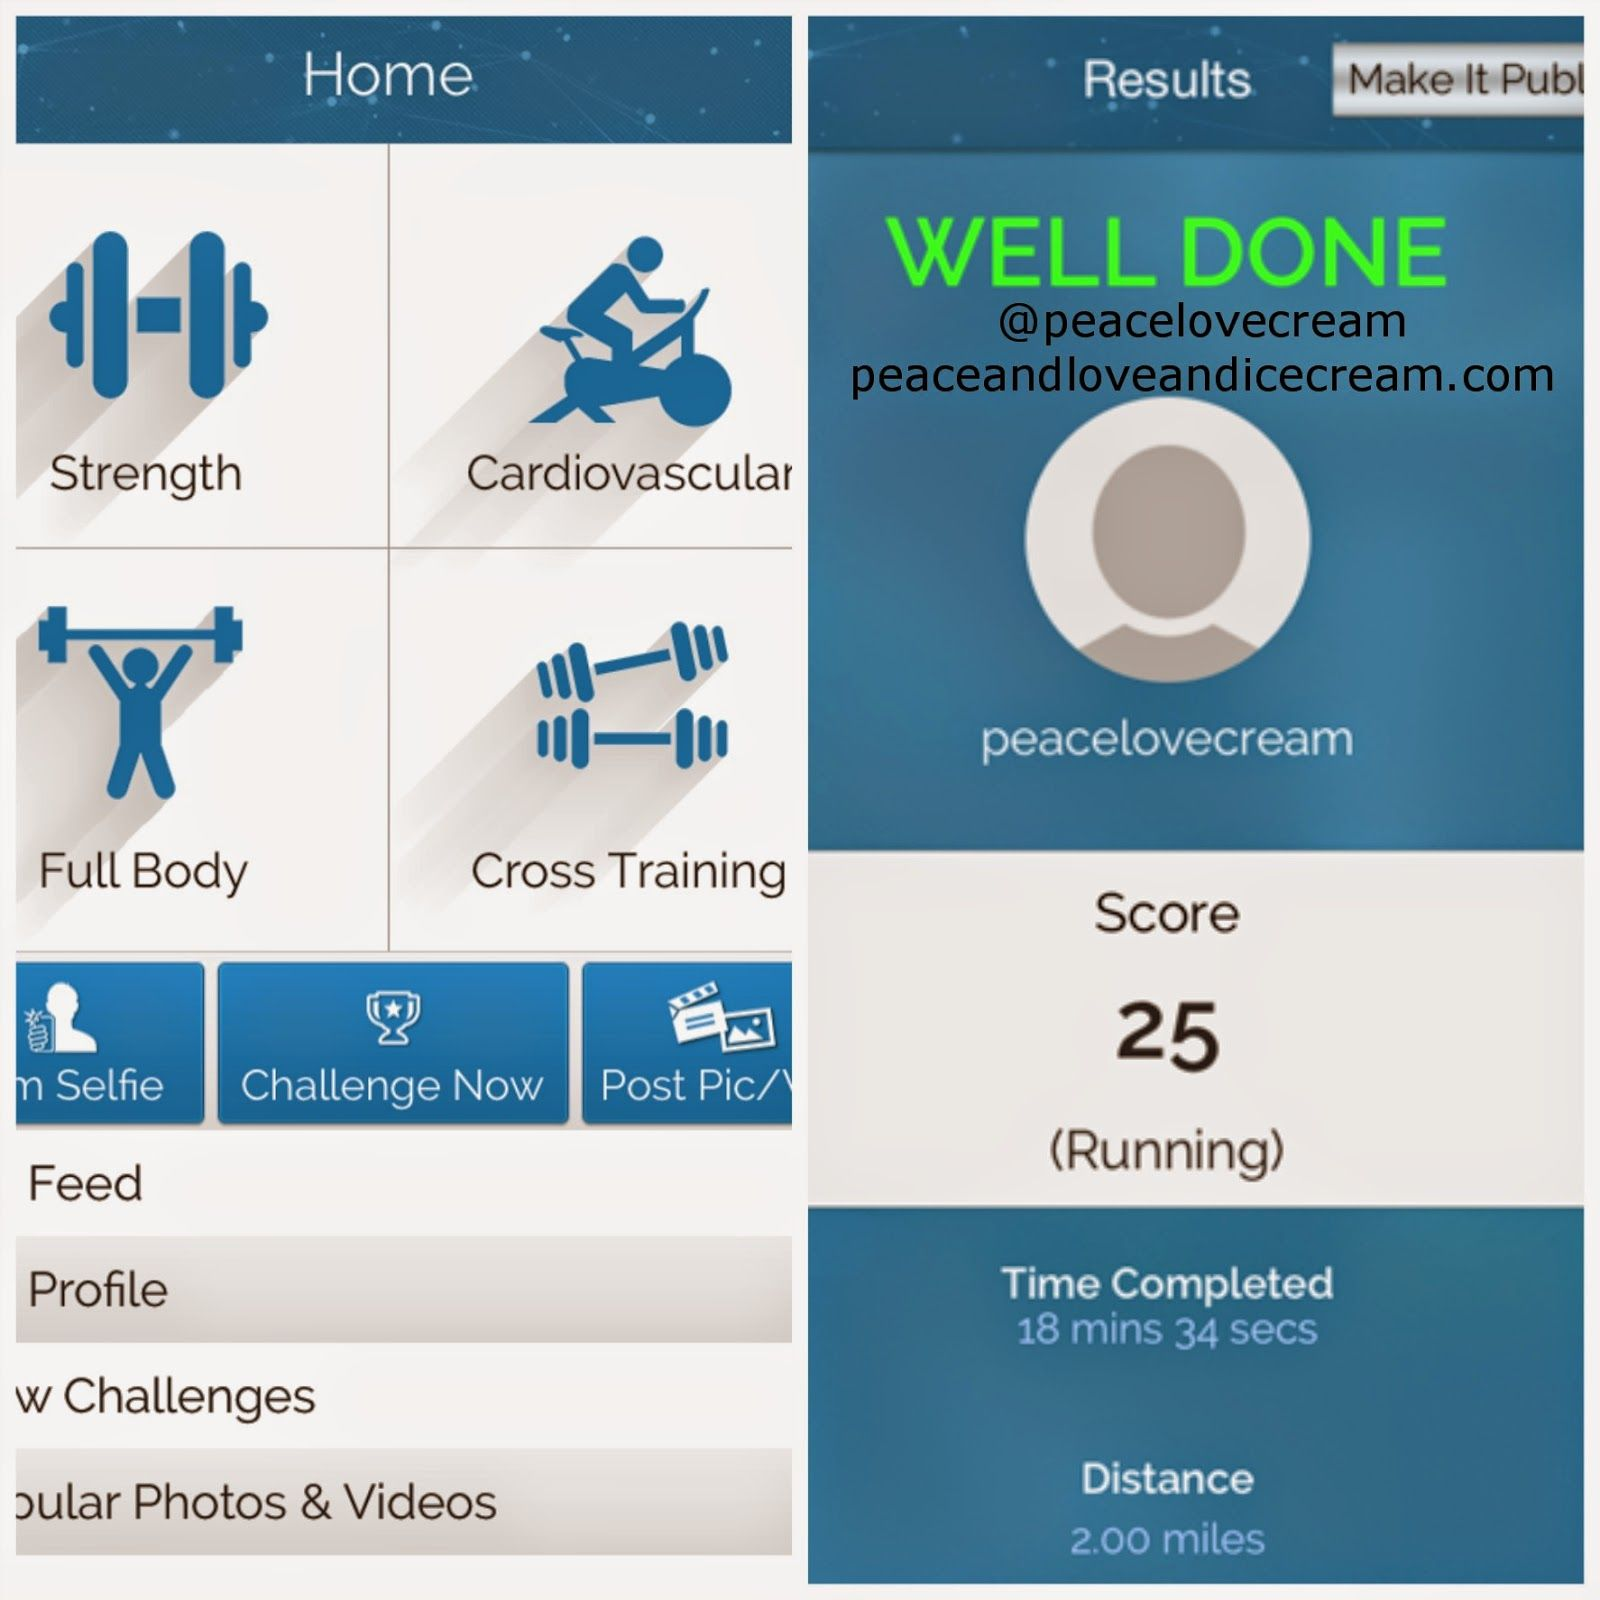 Review of the new fitness app, The Fitness Games. Pros and